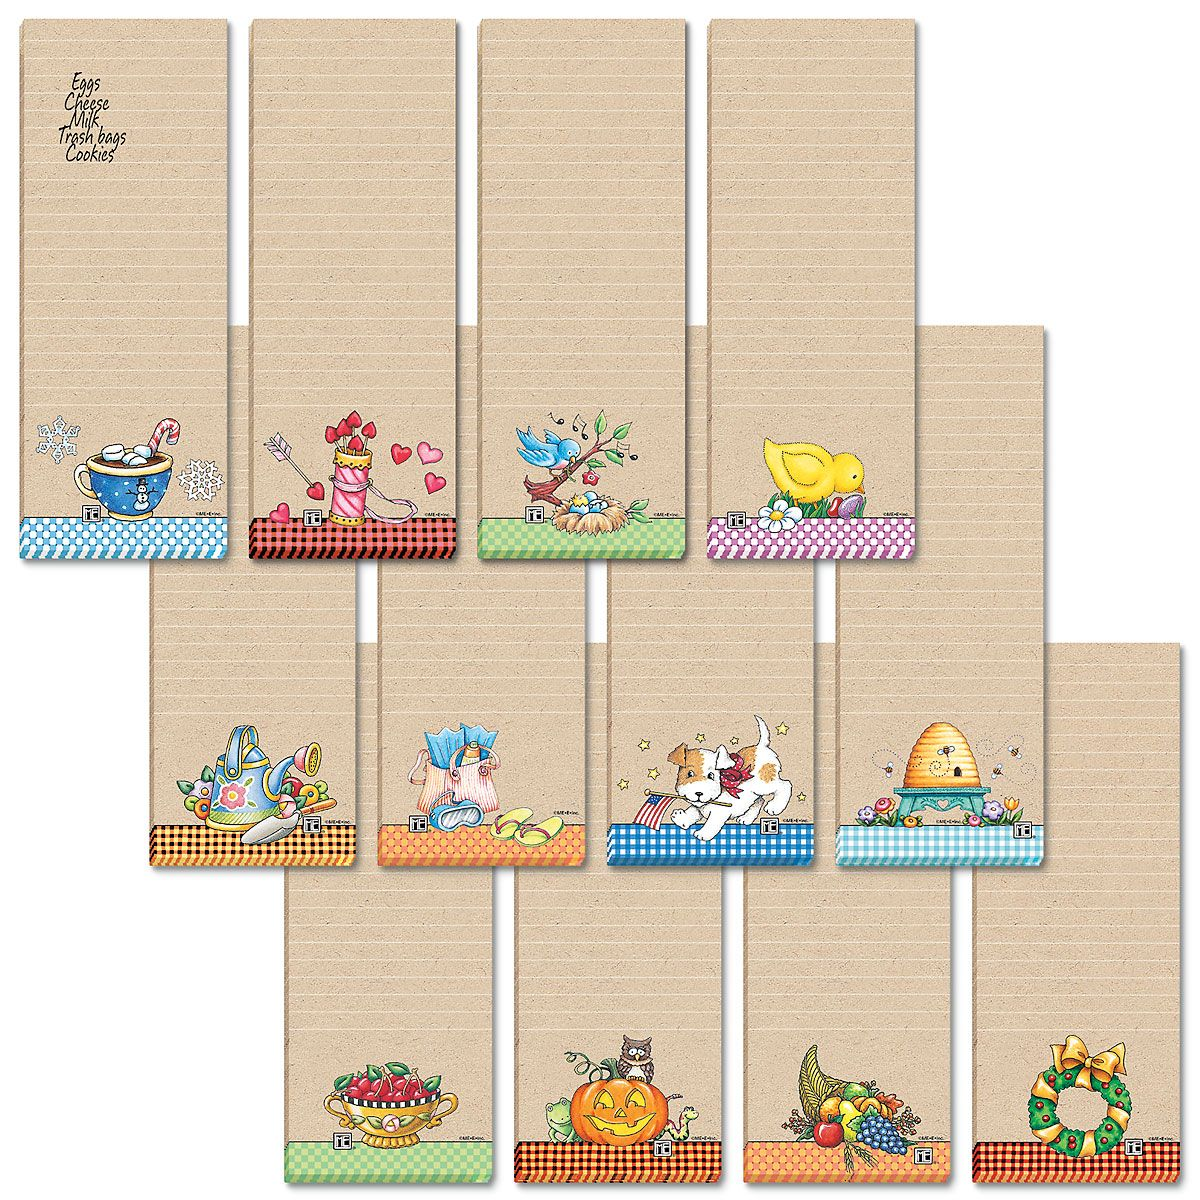 Mary Engelbreit Lined Magnetic Shopping List Pads Value Pack Add Mary's delightful artwork to quality kraft paper, and voilá — 12 lined 30-sheet pads to brighten your kitchen. Set of 12 designs includes magnetic backing; 2-1/2  x 6-1/2  long. Set of 12; (1 of each design) ©2018 Mary Engelbreit Enterprises, Inc.